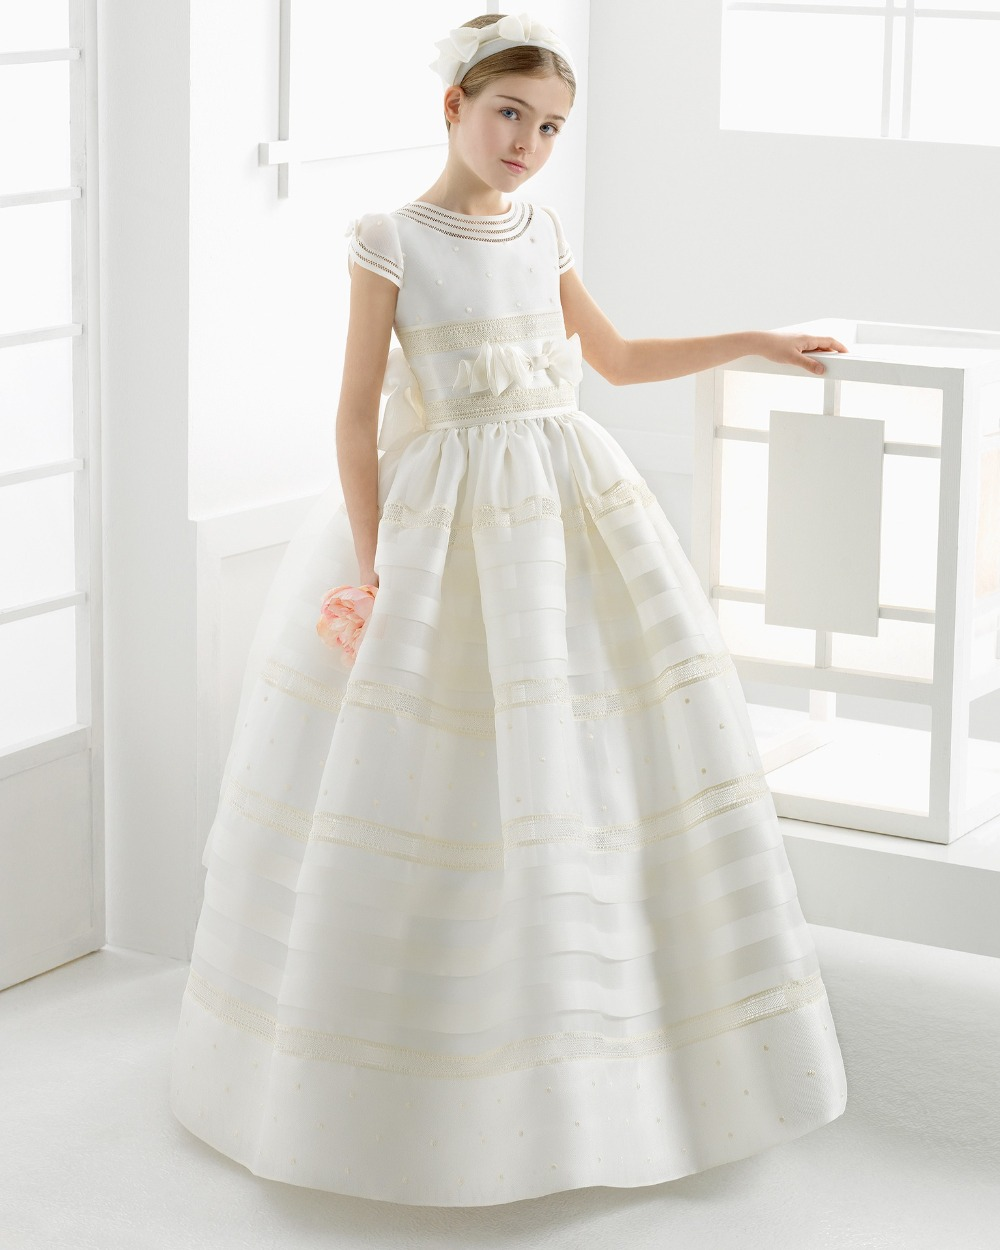 607a8ba0525 Cute Ball Gown White 2018 first communion dresses for girls Satin Empire  Bow Floor Length Flower